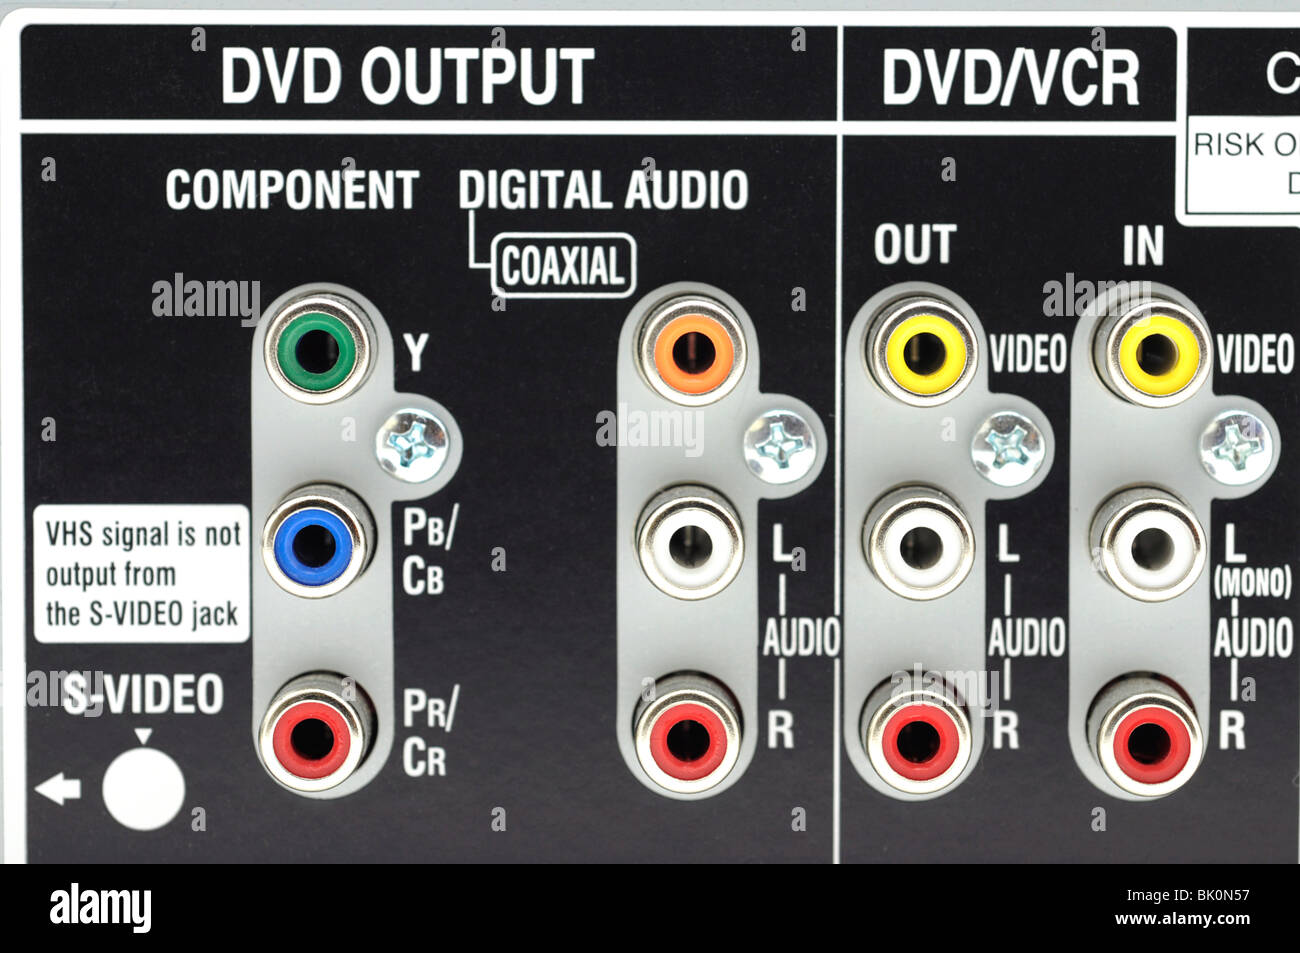 Back Panel on DVD/VCR Combo - Inputs and Outputs - Stock Image